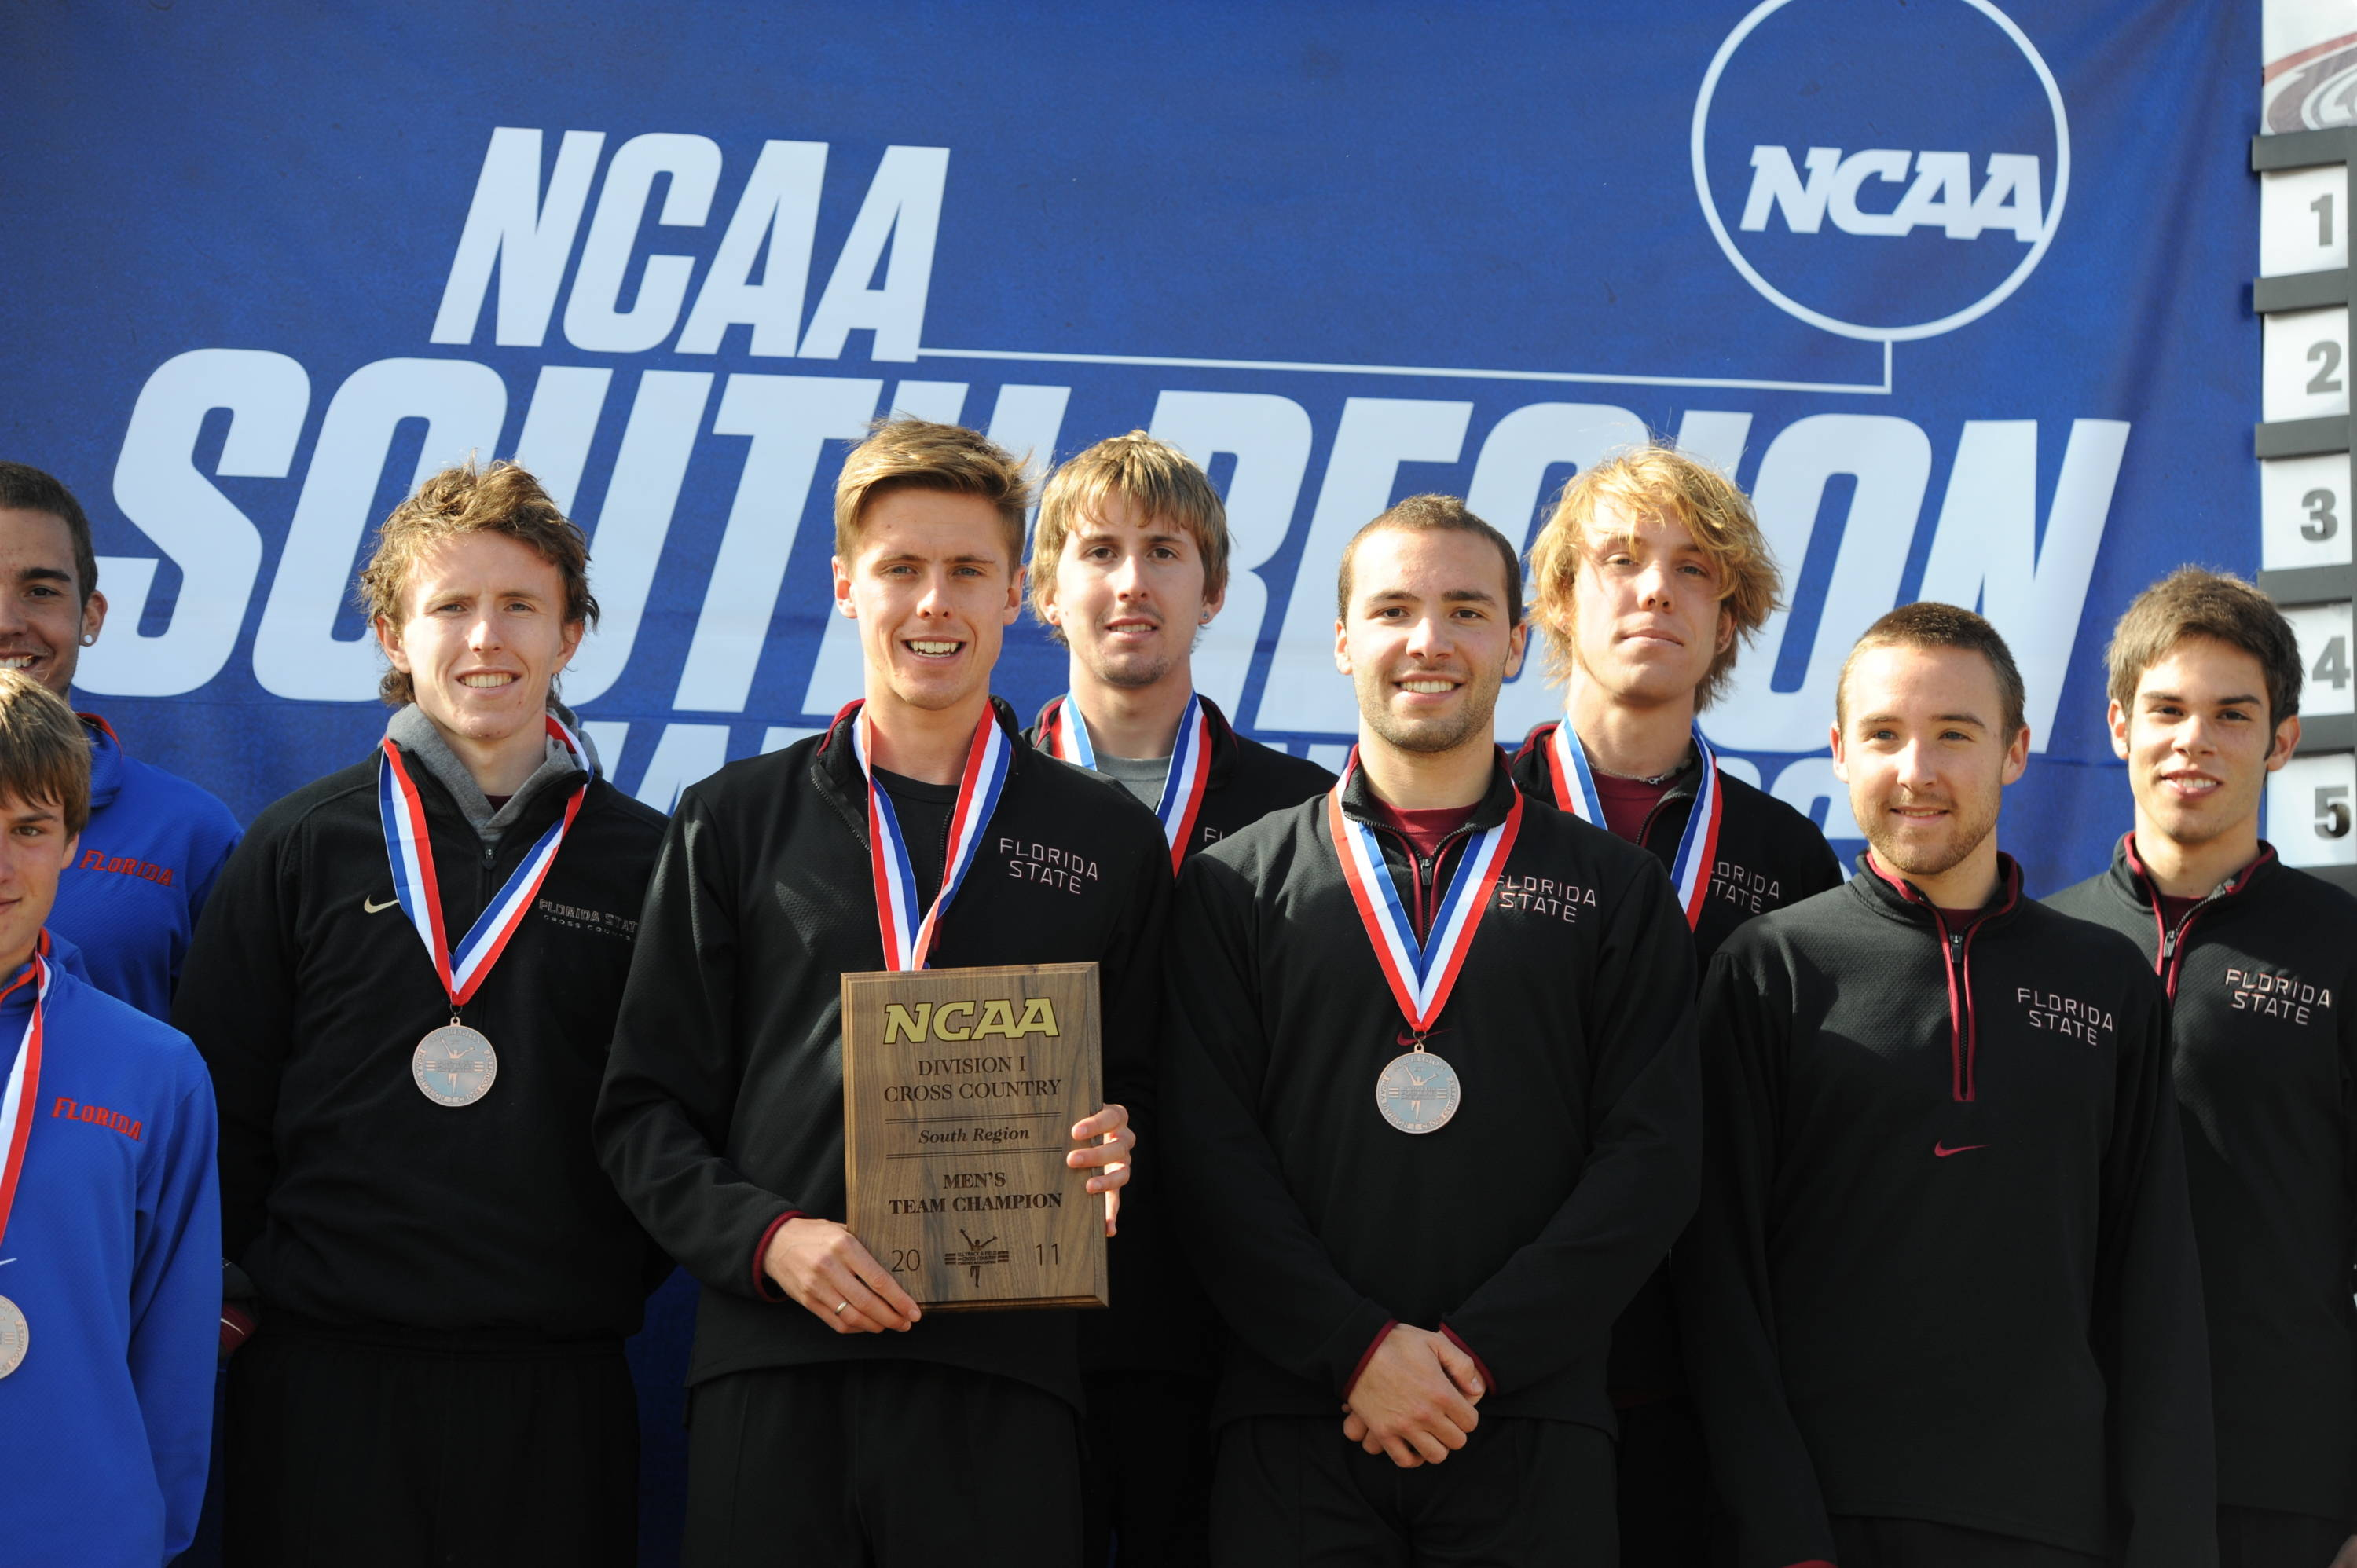 The Florida State men's cross country team poses on the podium after capturing the 2011 NCAA South Region title. It was the first for the men since 2006.